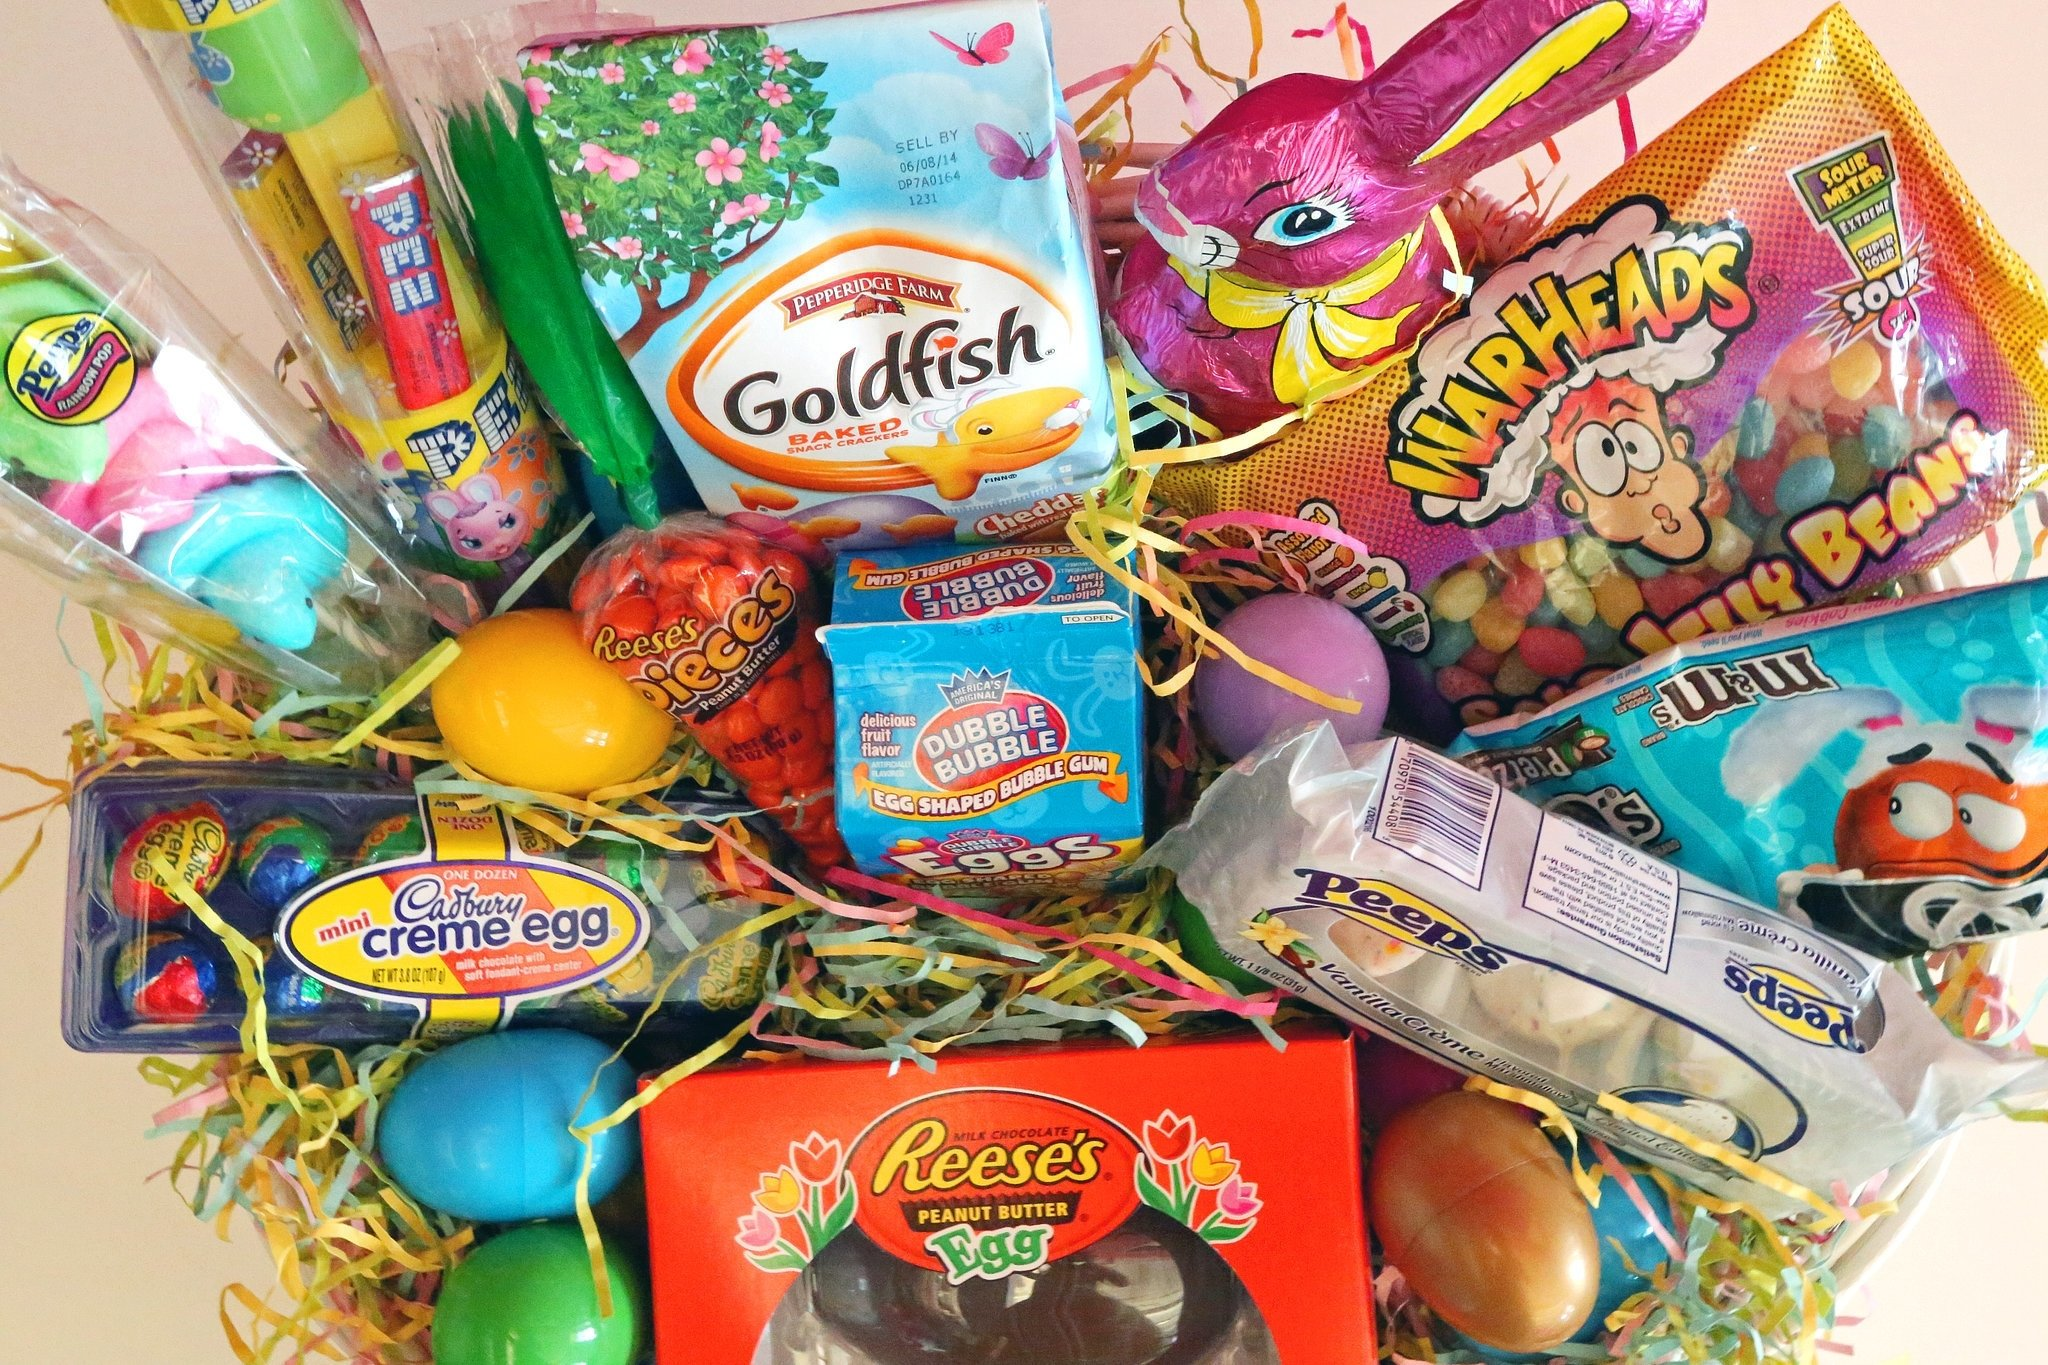 10 Beautiful Easter Basket Ideas For Boyfriend 4 20 easter basket popsugar food 2020